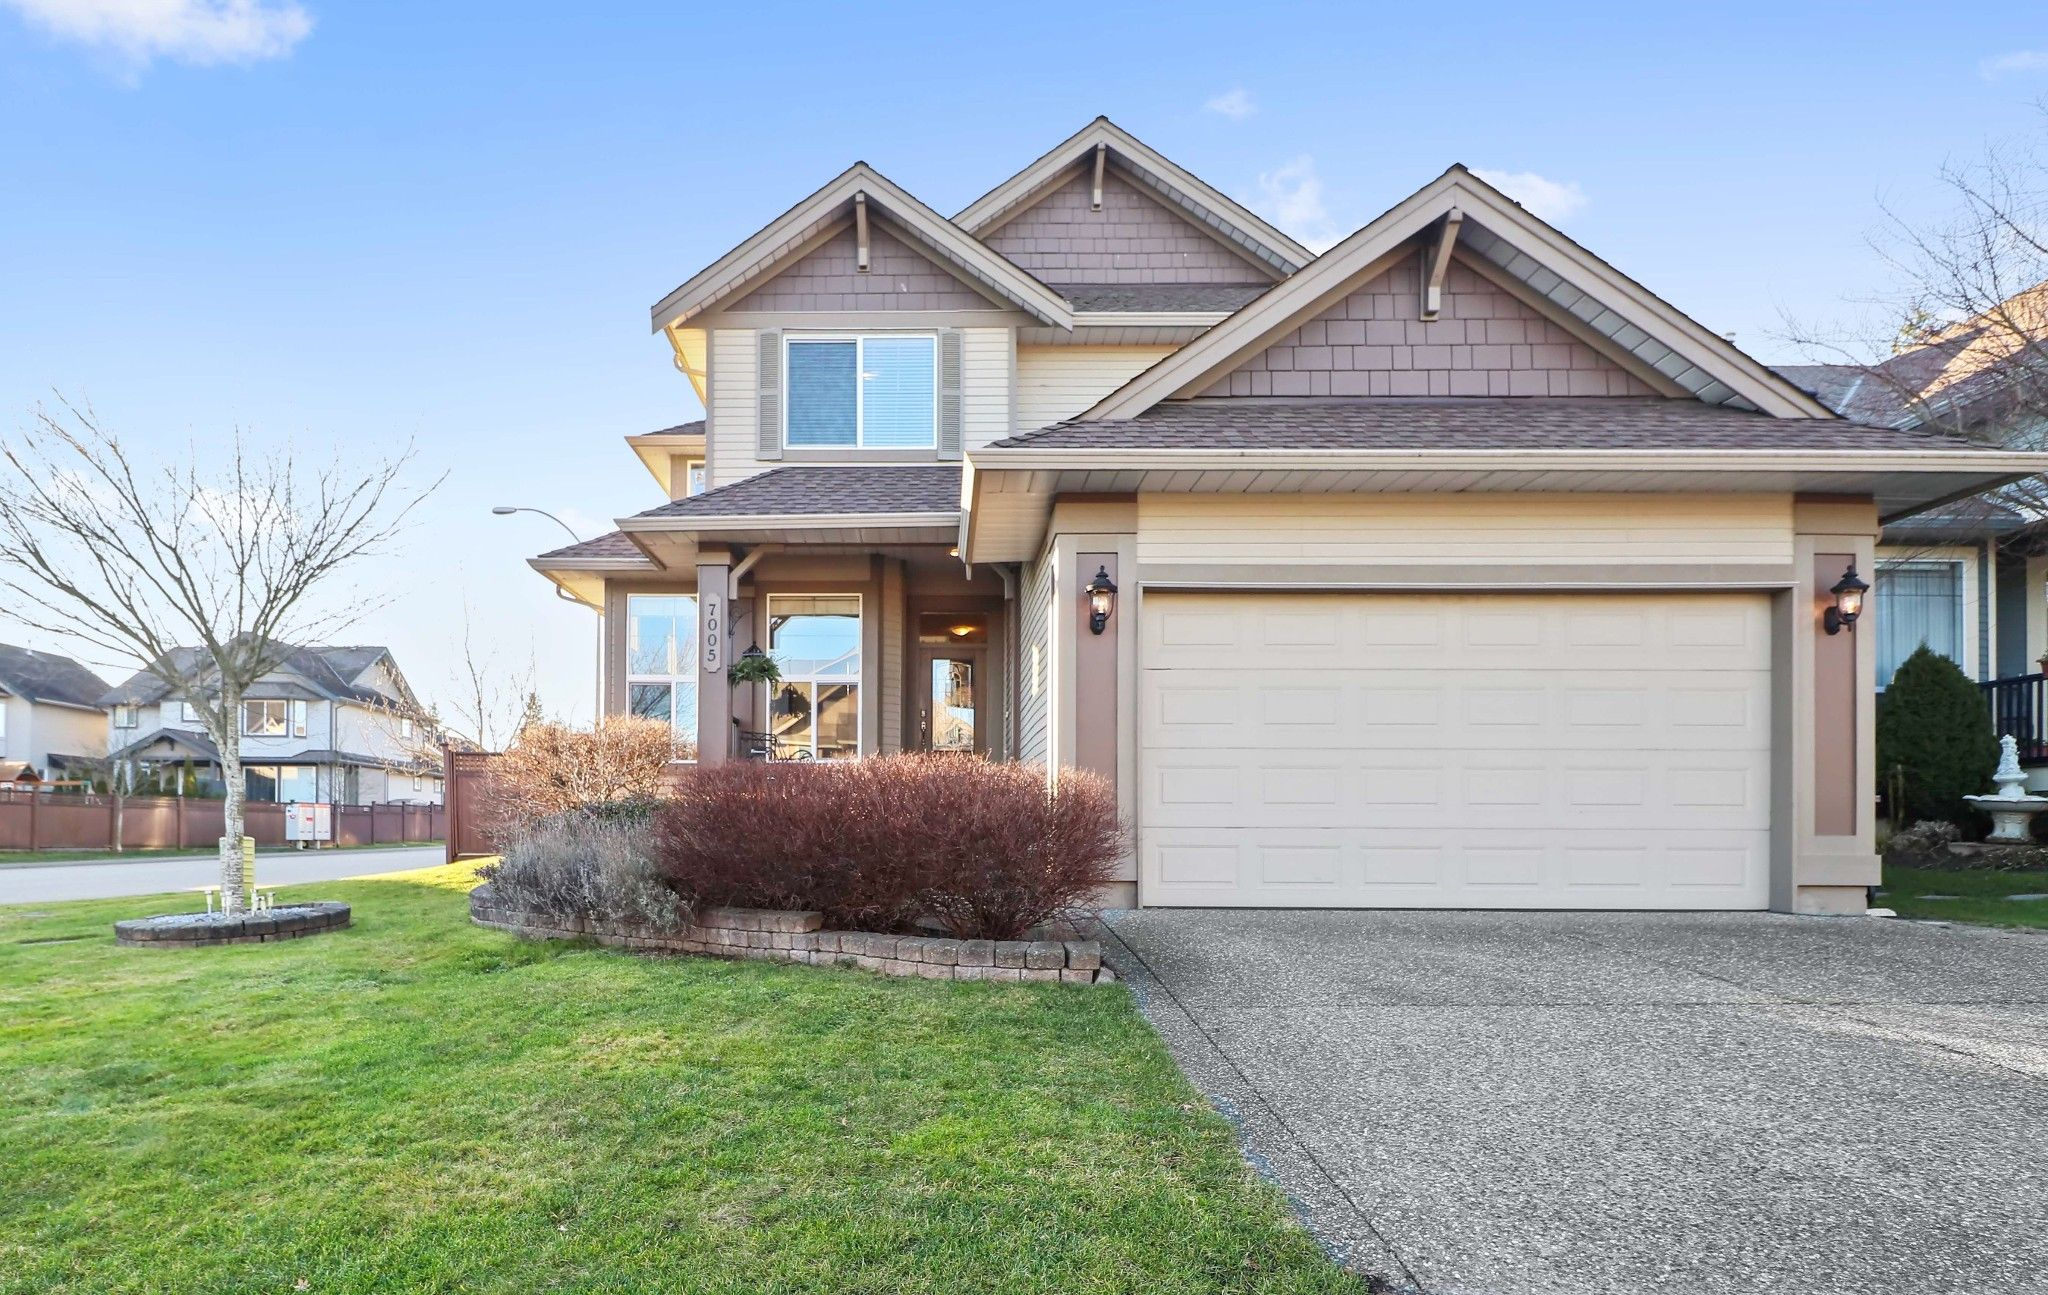 """Main Photo: 7005 196B Street in Langley: Willoughby Heights House for sale in """"WILLOWBROOK"""" : MLS®# R2334310"""